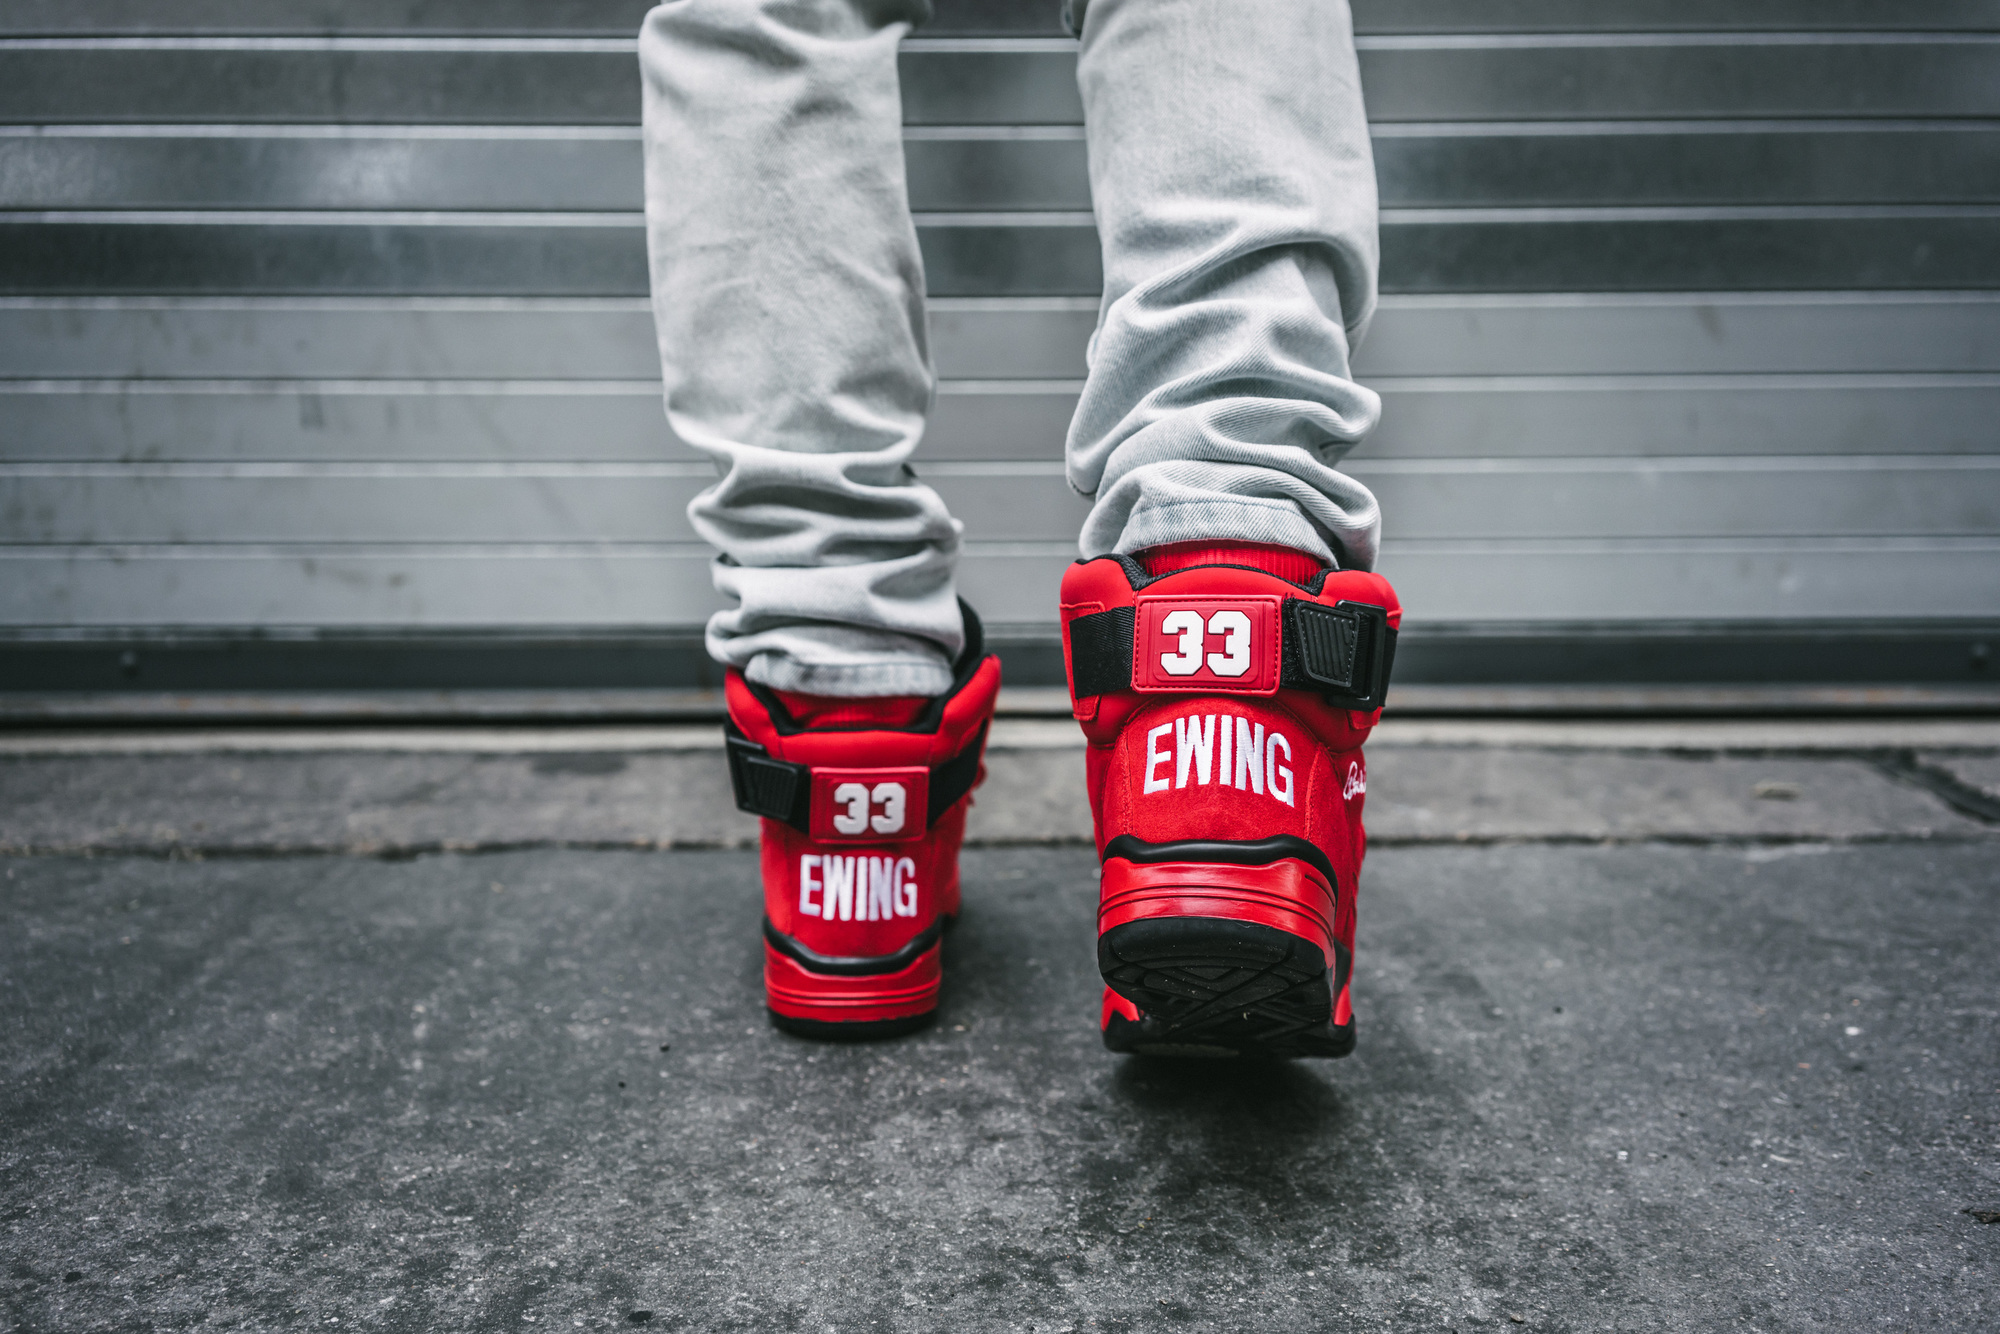 ewing-33-hi-red-suede-february-retro-collection-4